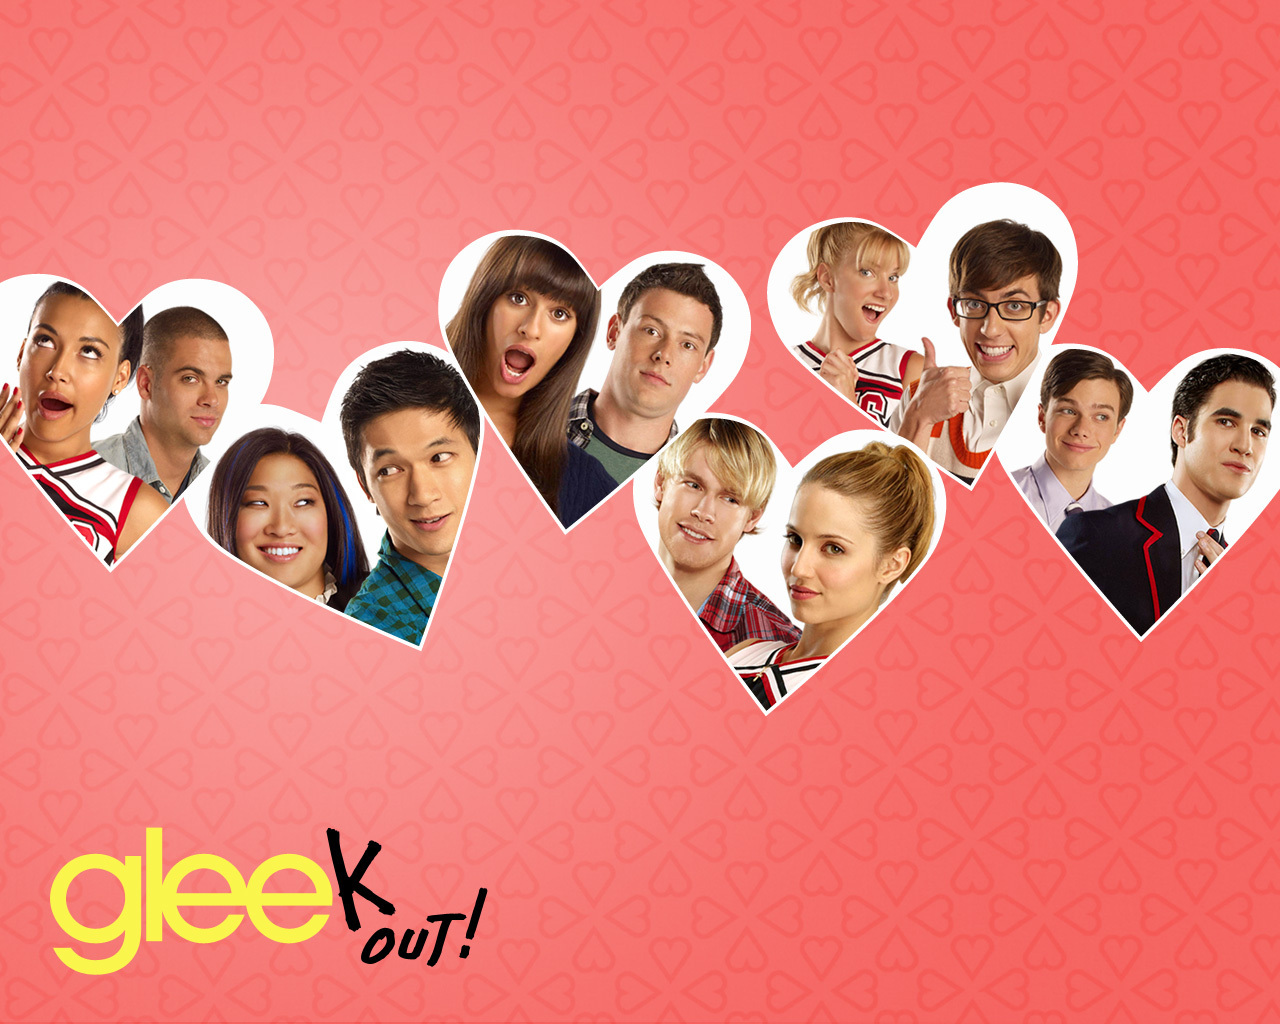 Glee dating games